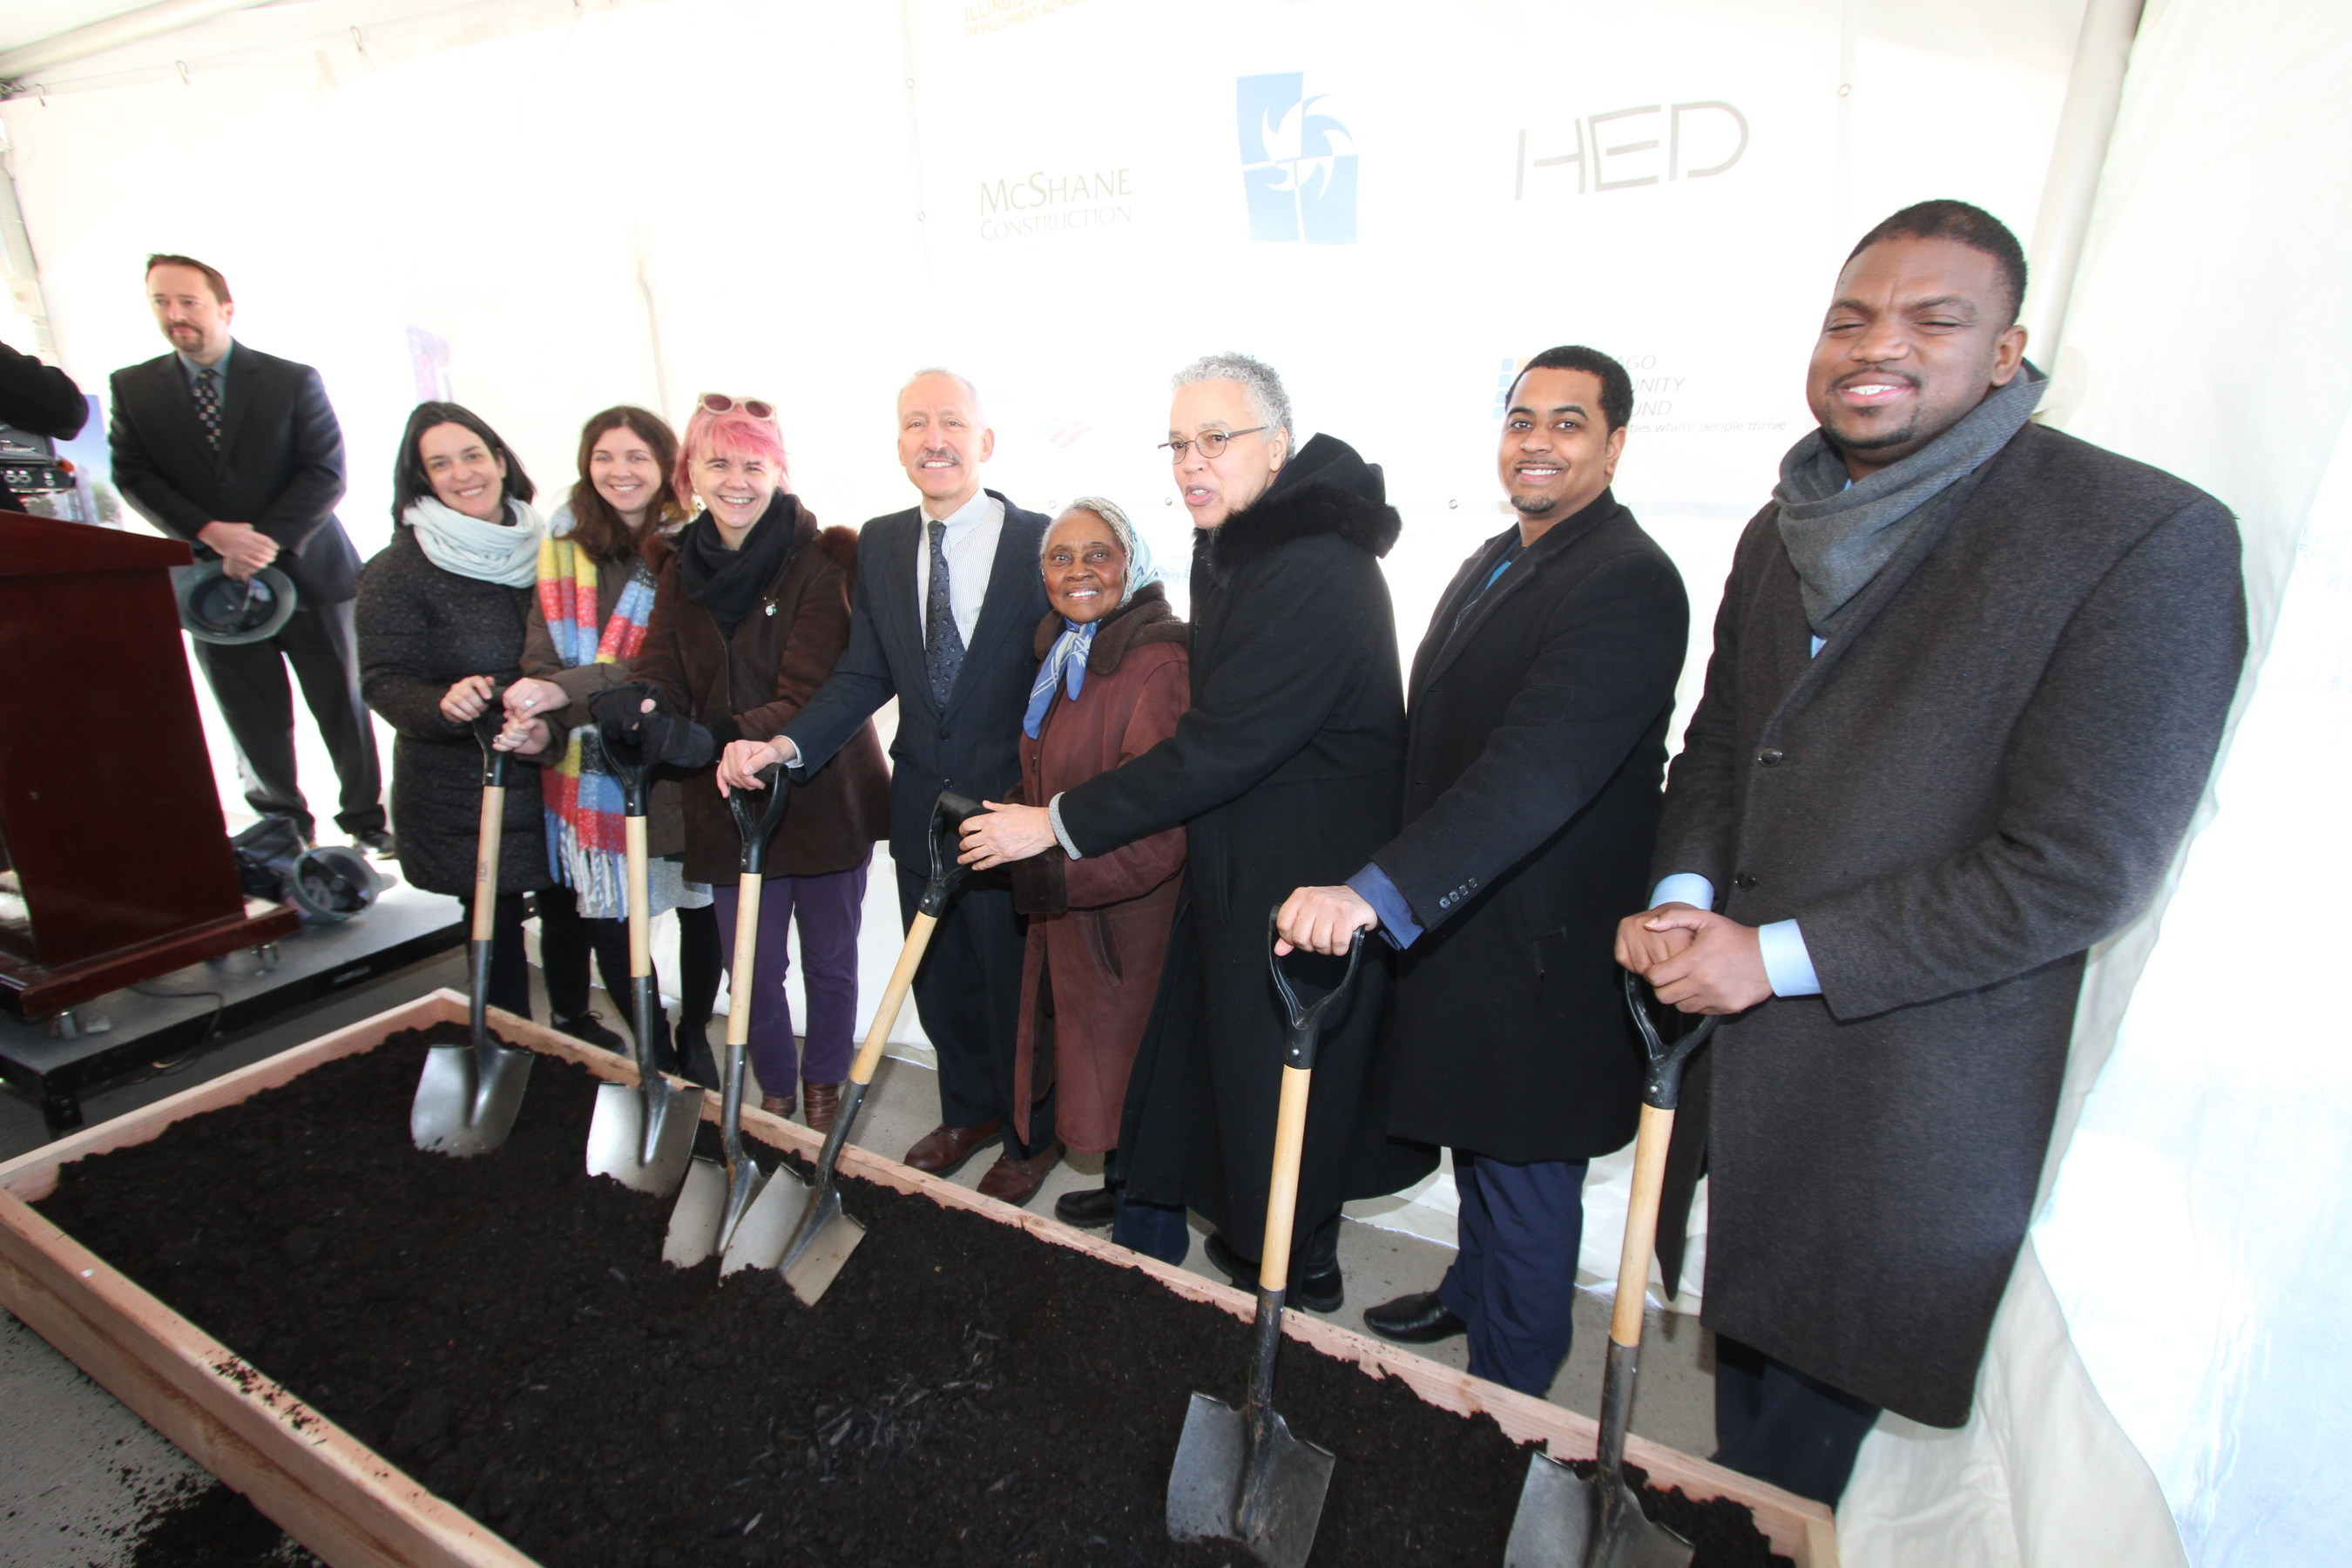 Interfaith Housing Development Celebrates the Groundbreaking of New Affordable Housing Community in Chicago Suburb